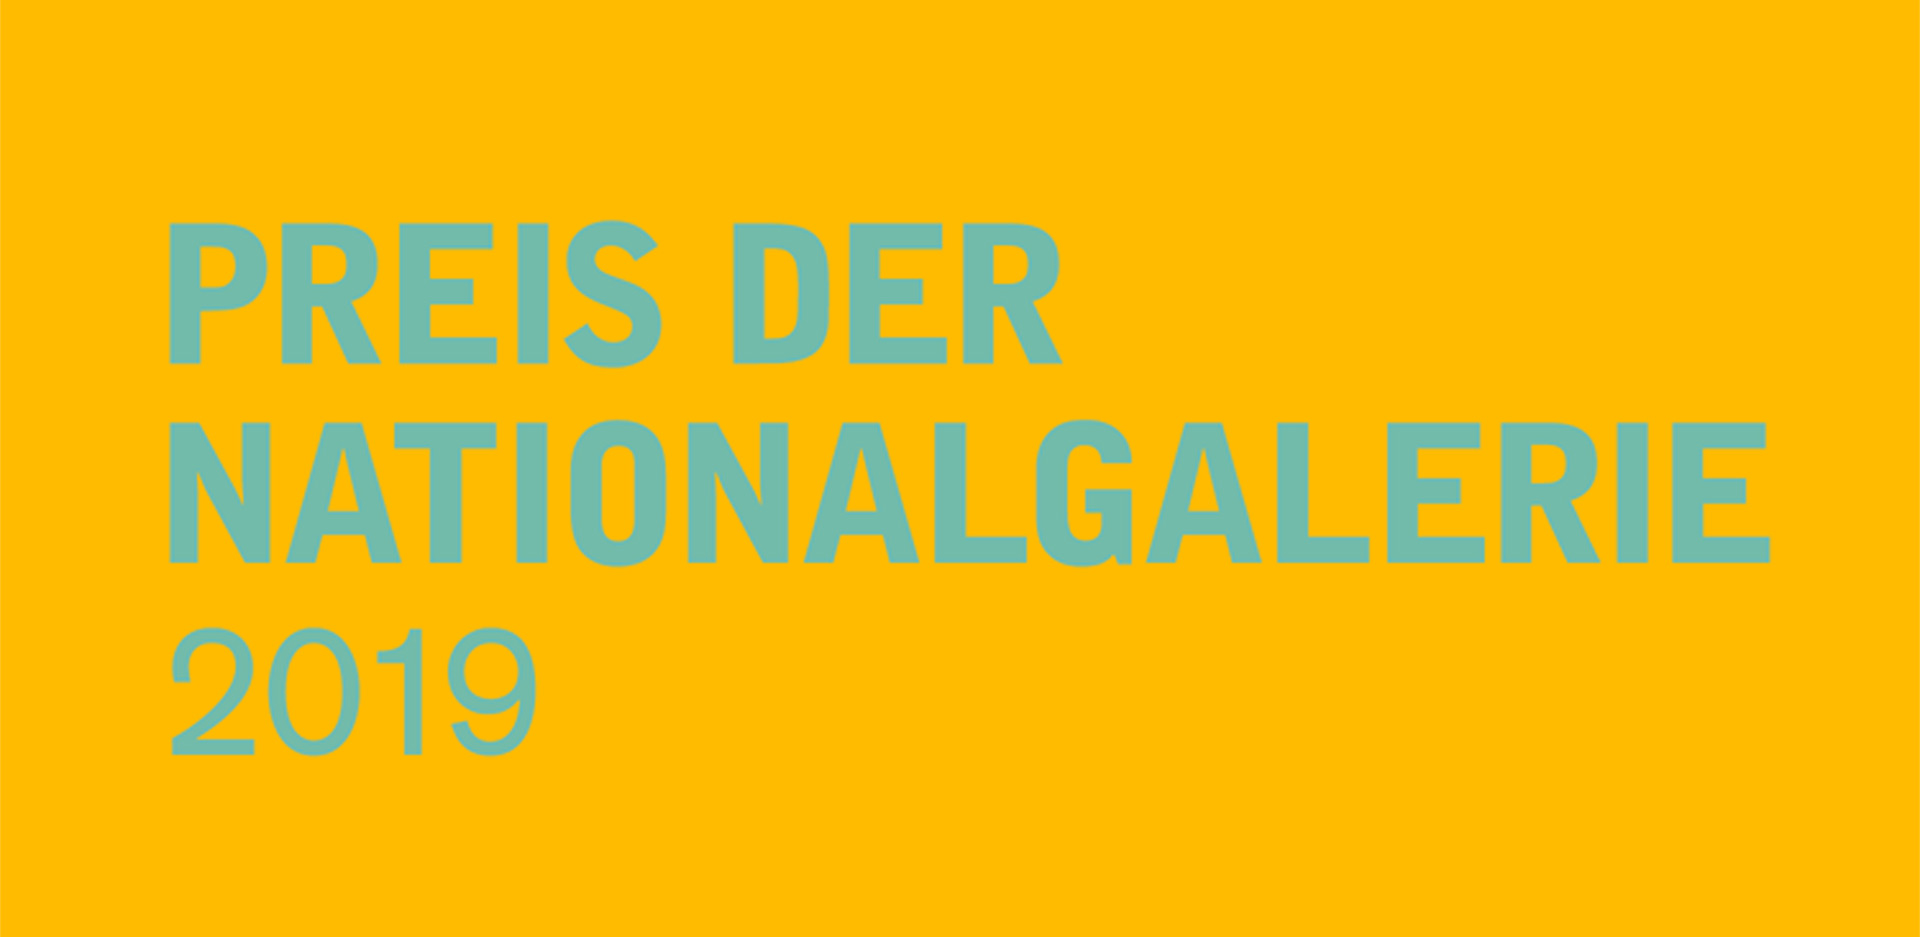 The award winner will be announced together with the winner of the Preis der Nationalgalerie 2019 on 12  September.